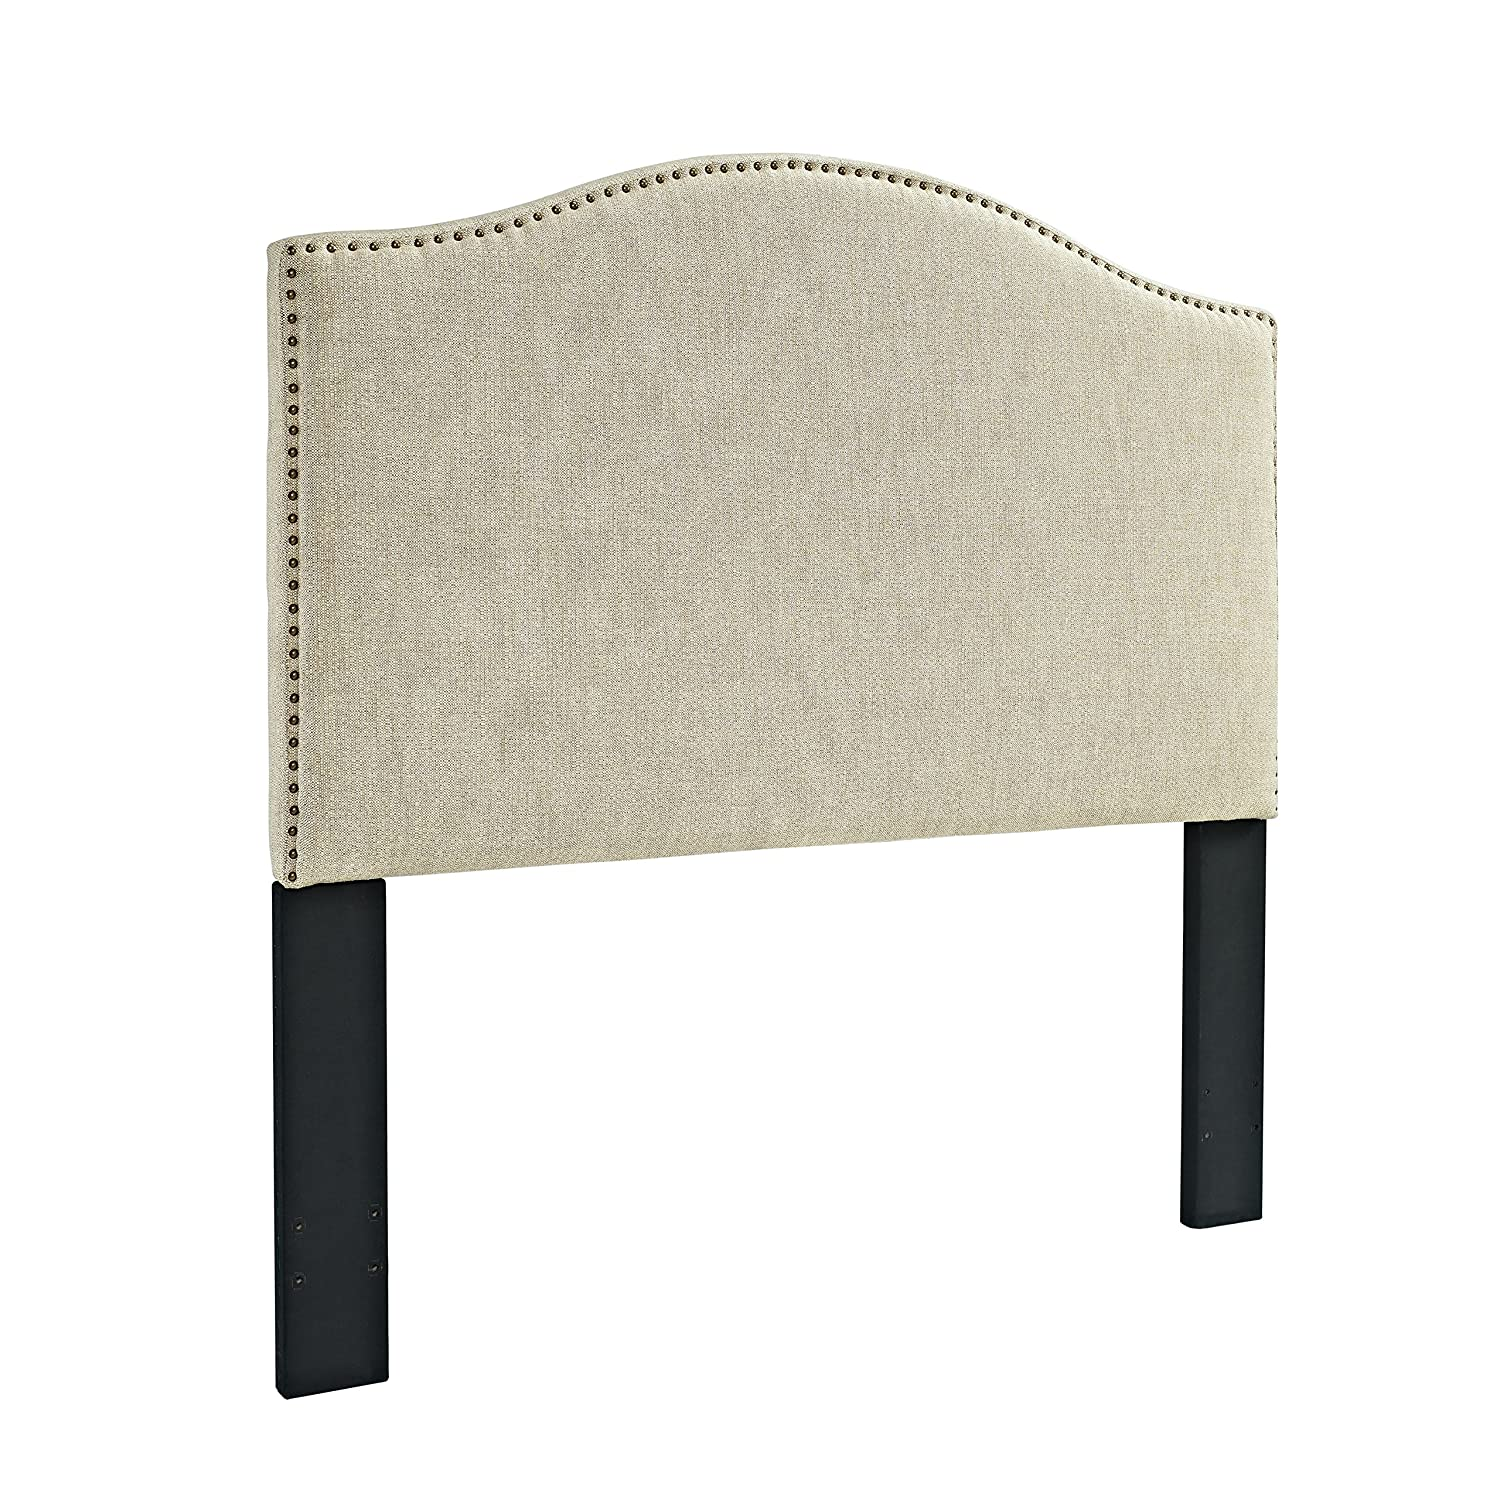 Pulaski Selma Upholstered Bed Bench, Tan Home Meridian International DS-8632-400